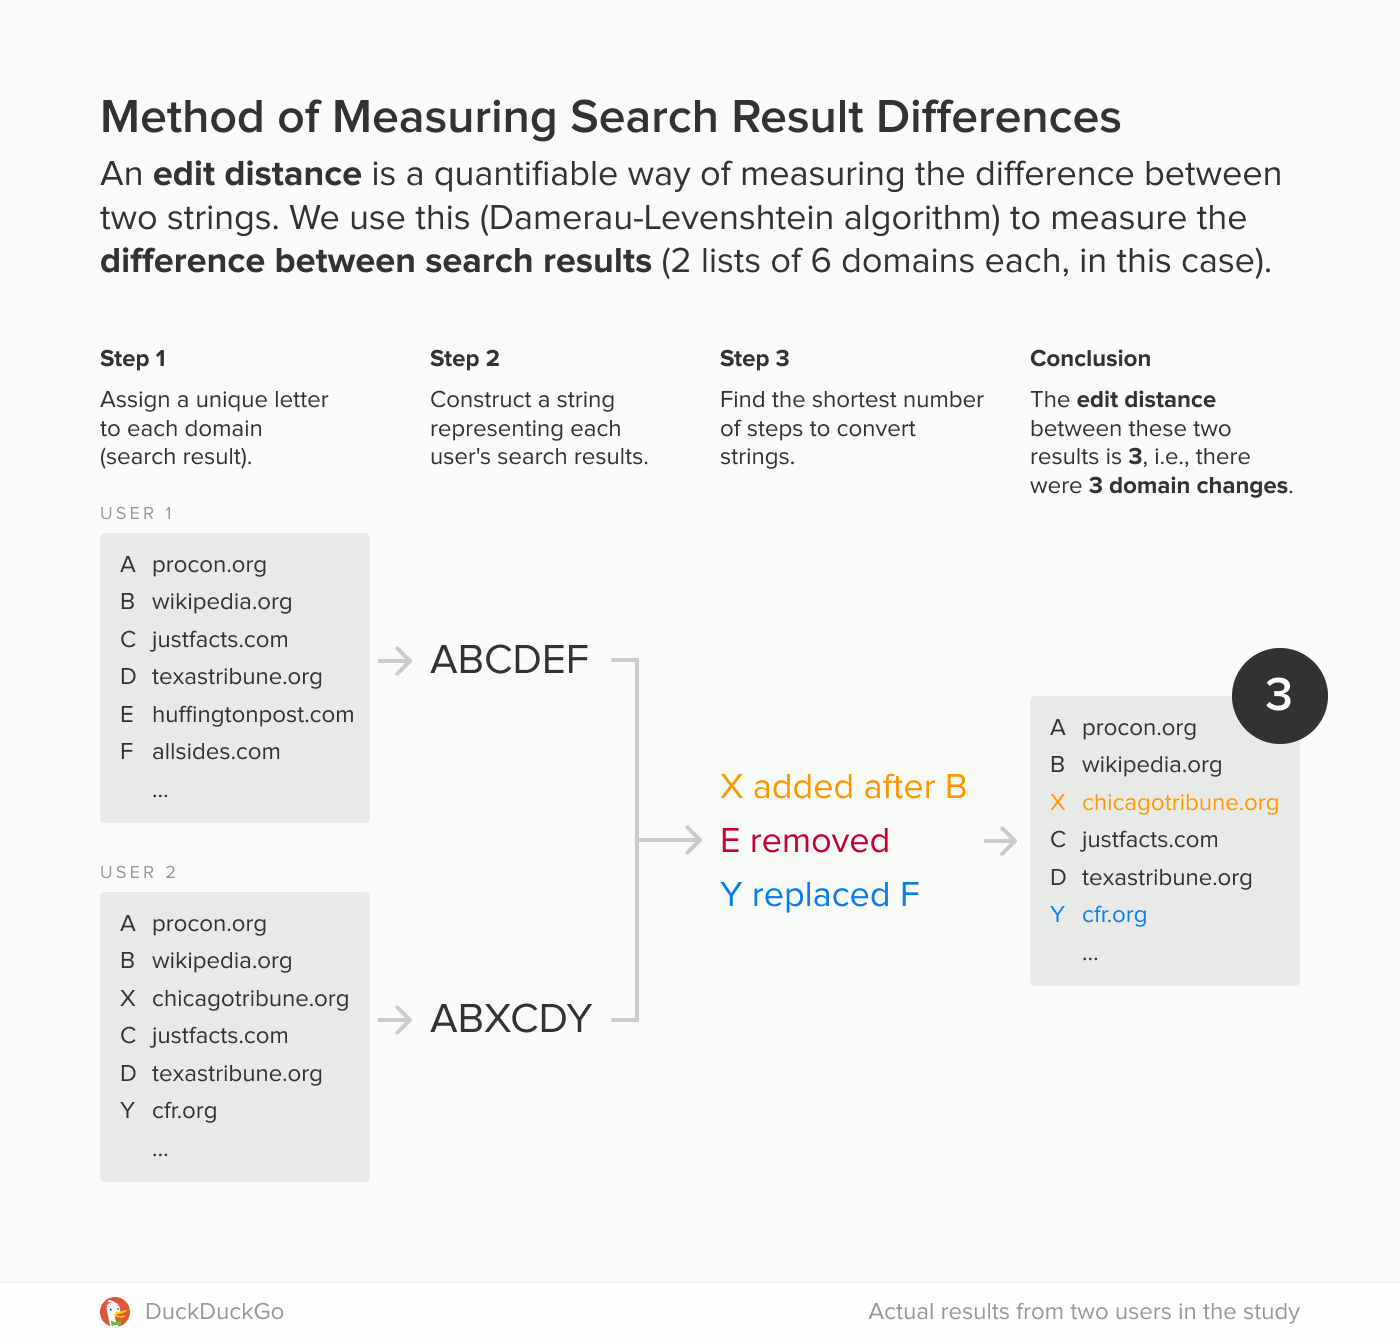 edit distances1 2 - Even in Incognito Mode Google is influencing what you click - DuckDuckGo